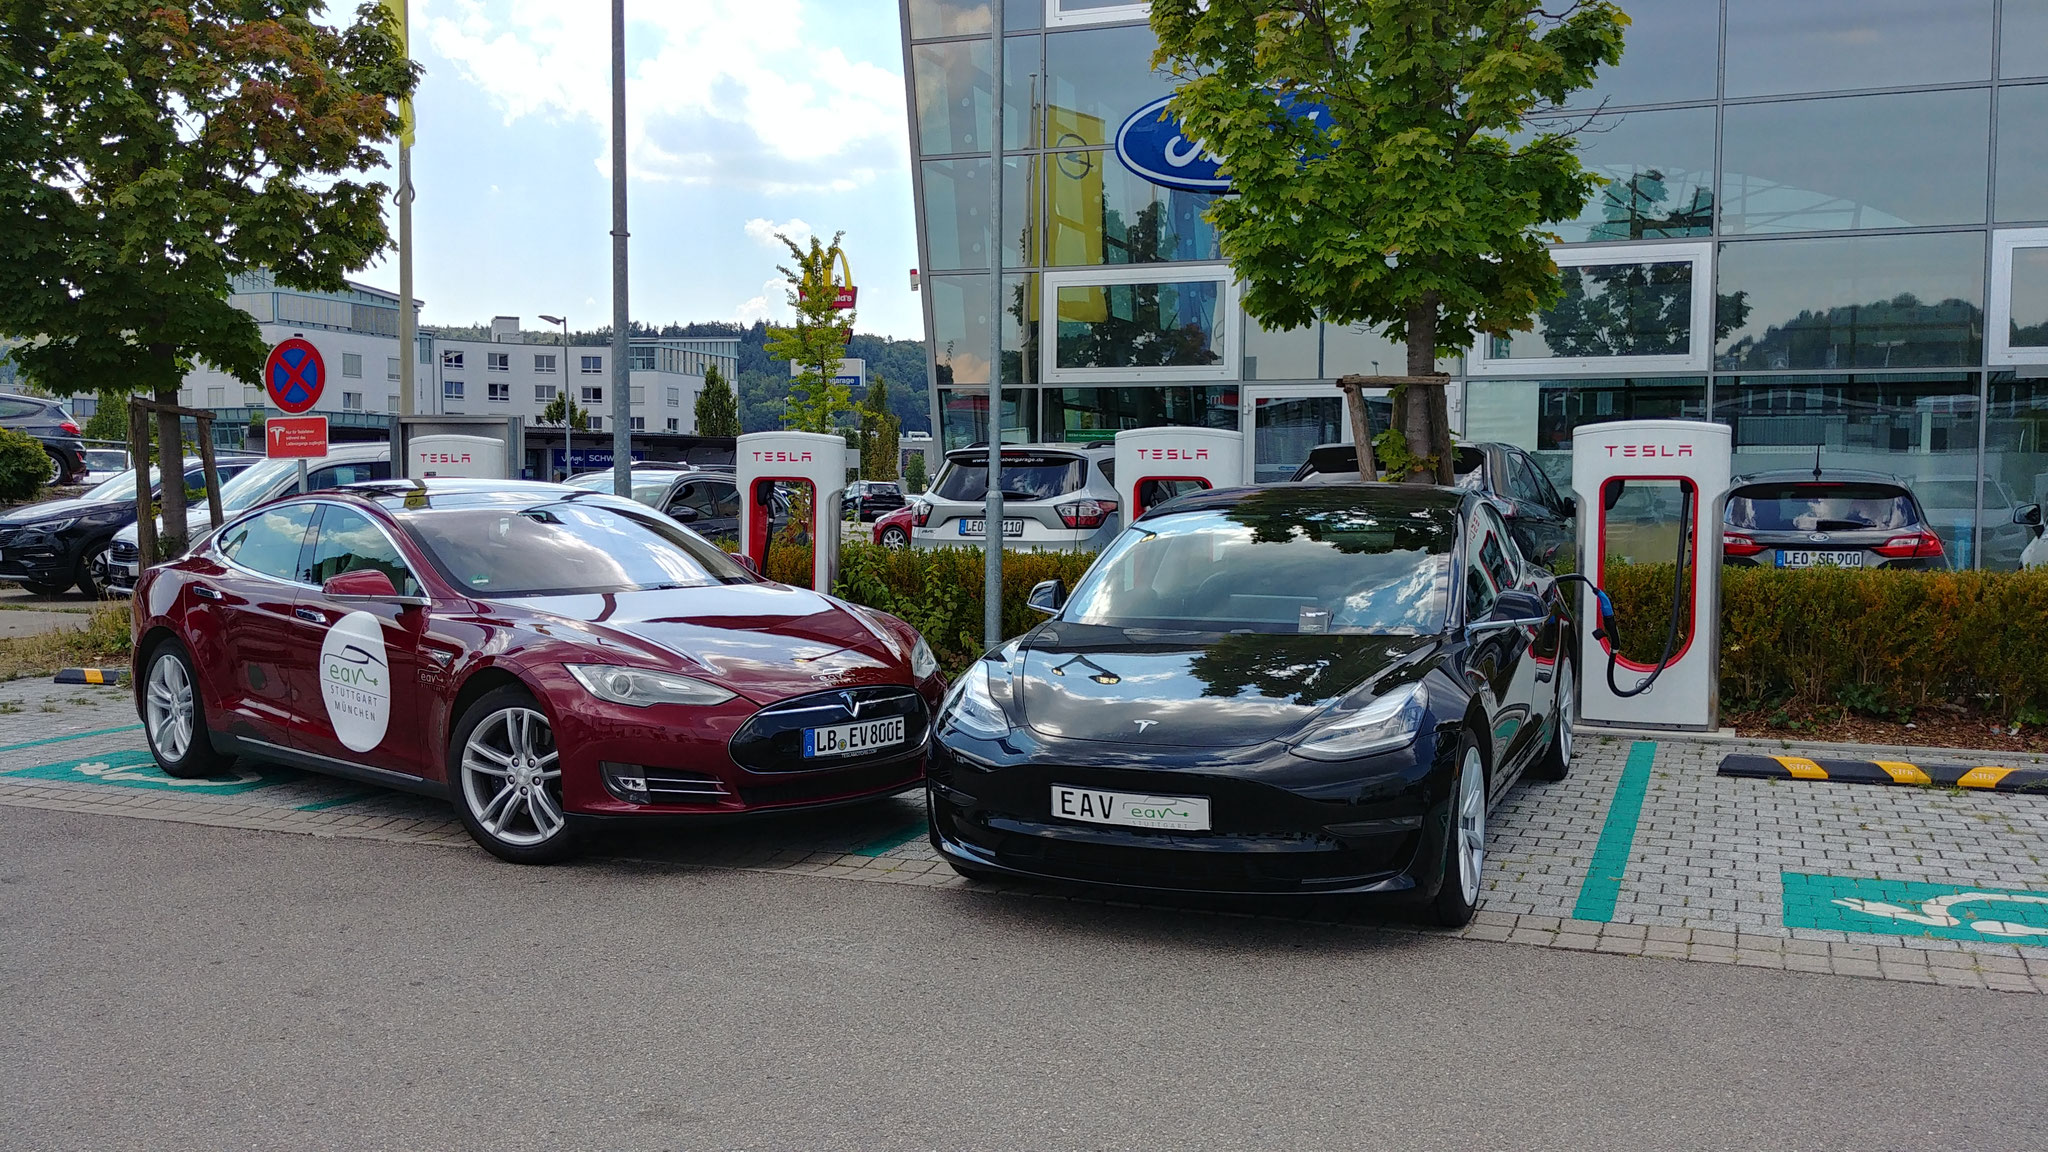 Kann das US-Model 3 an einem EU-Supercharger laden?